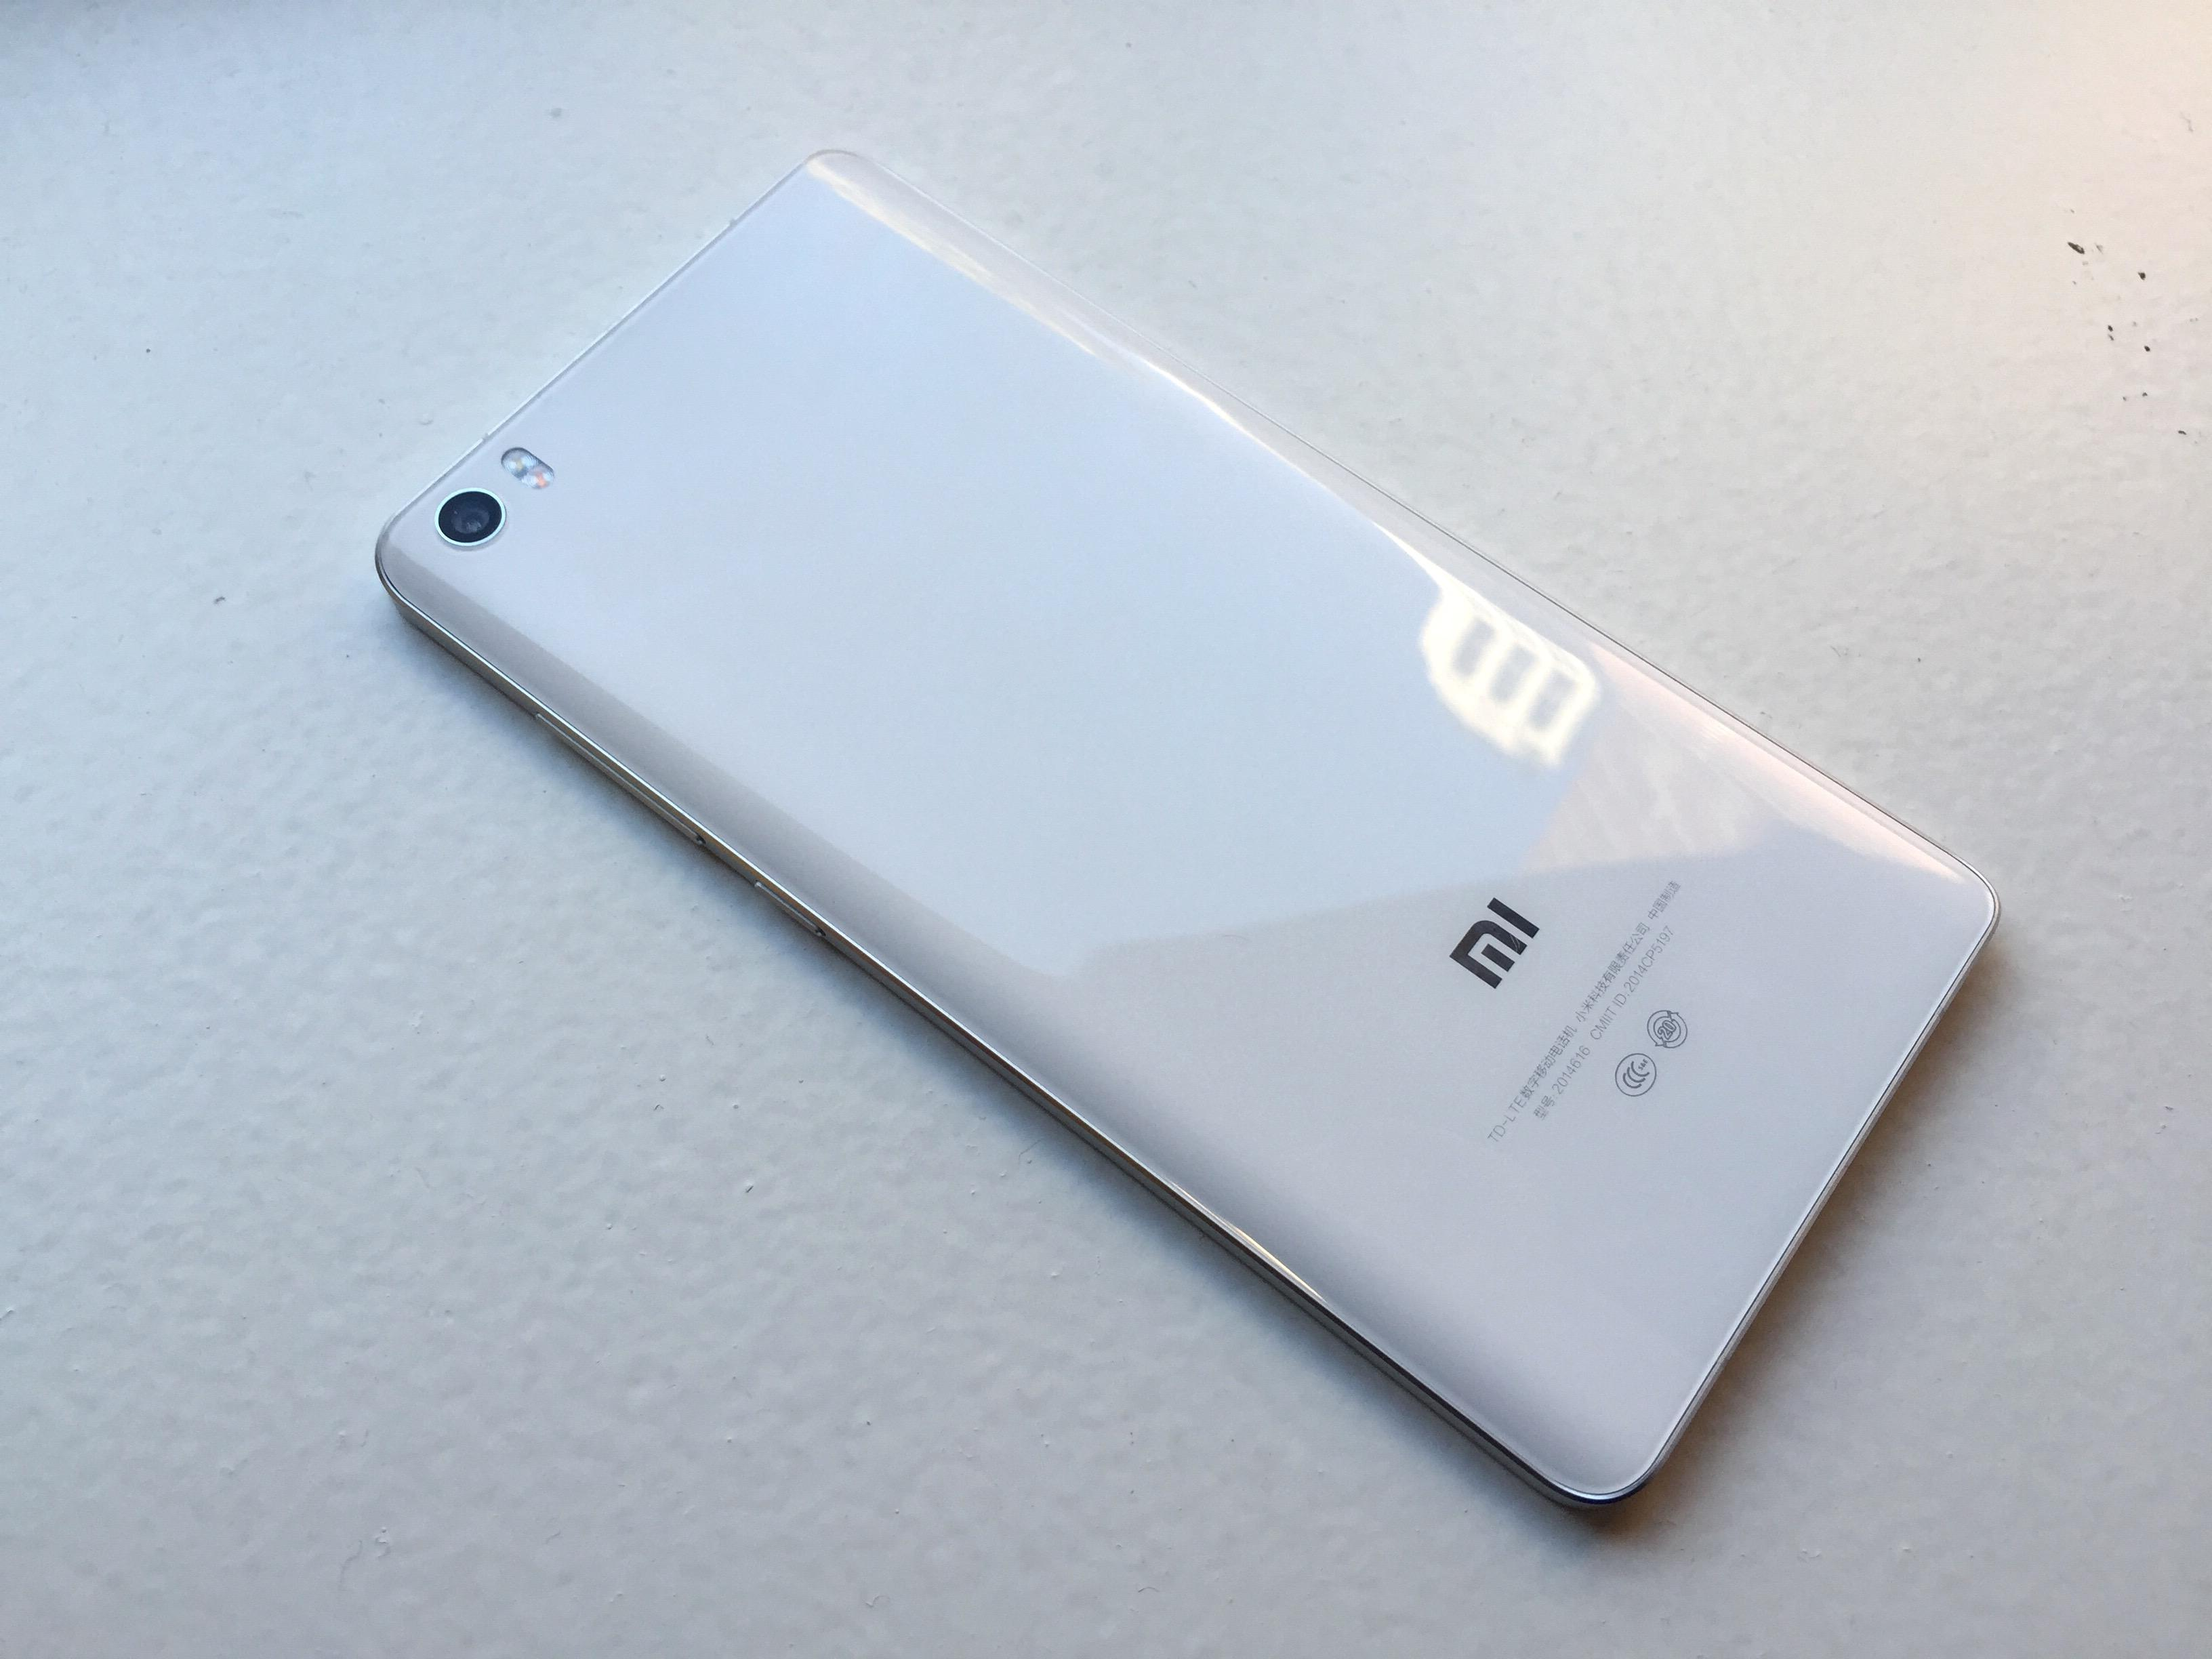 Xiaomi Mi Note Review: Why Apple And Samsung Should Be Very Worried About Xiaomi